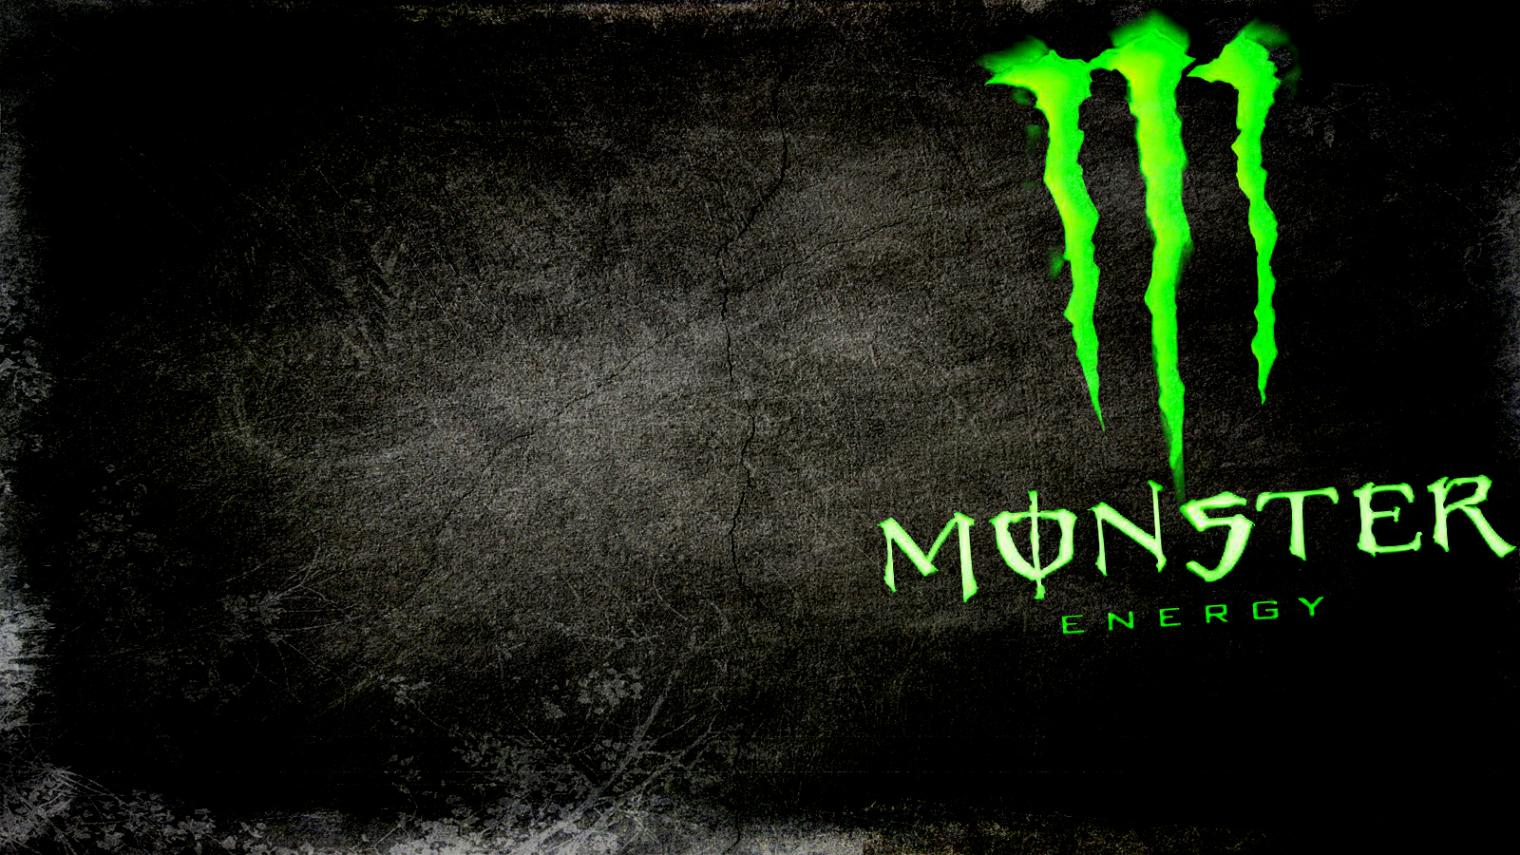 monster energy new cool hd wallpaper is a great wallpaper for your 1520x855